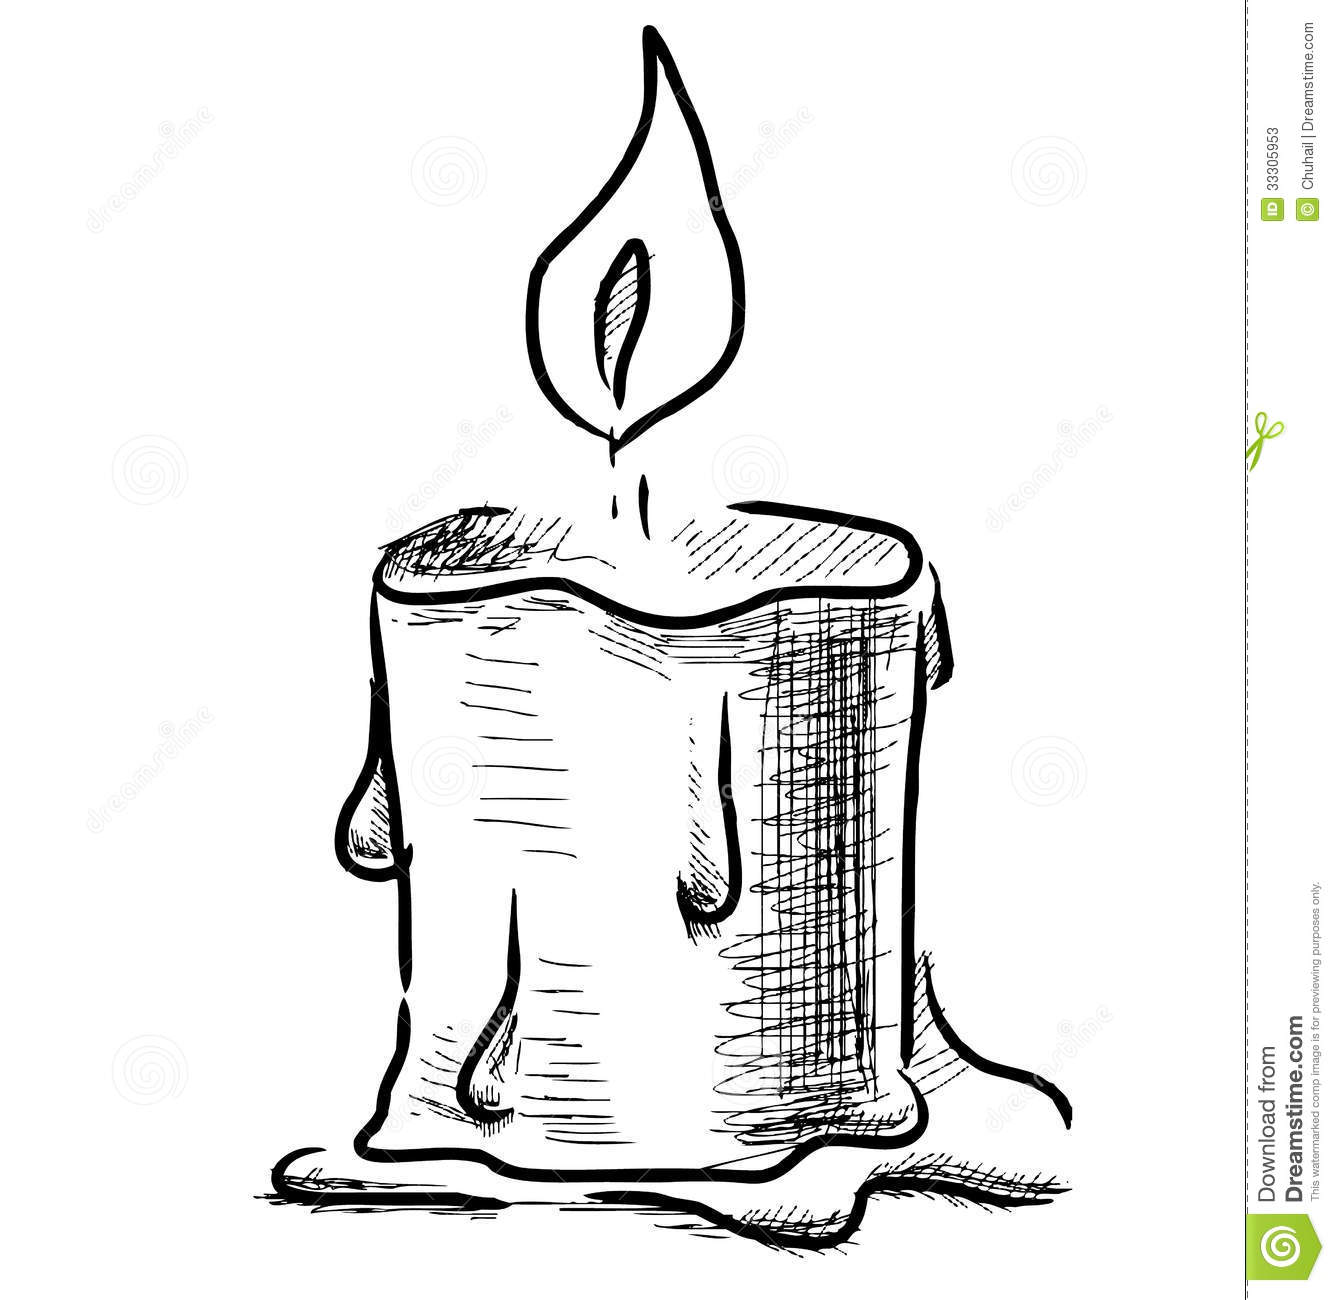 Candle with fire on white background sketch vector illustration.